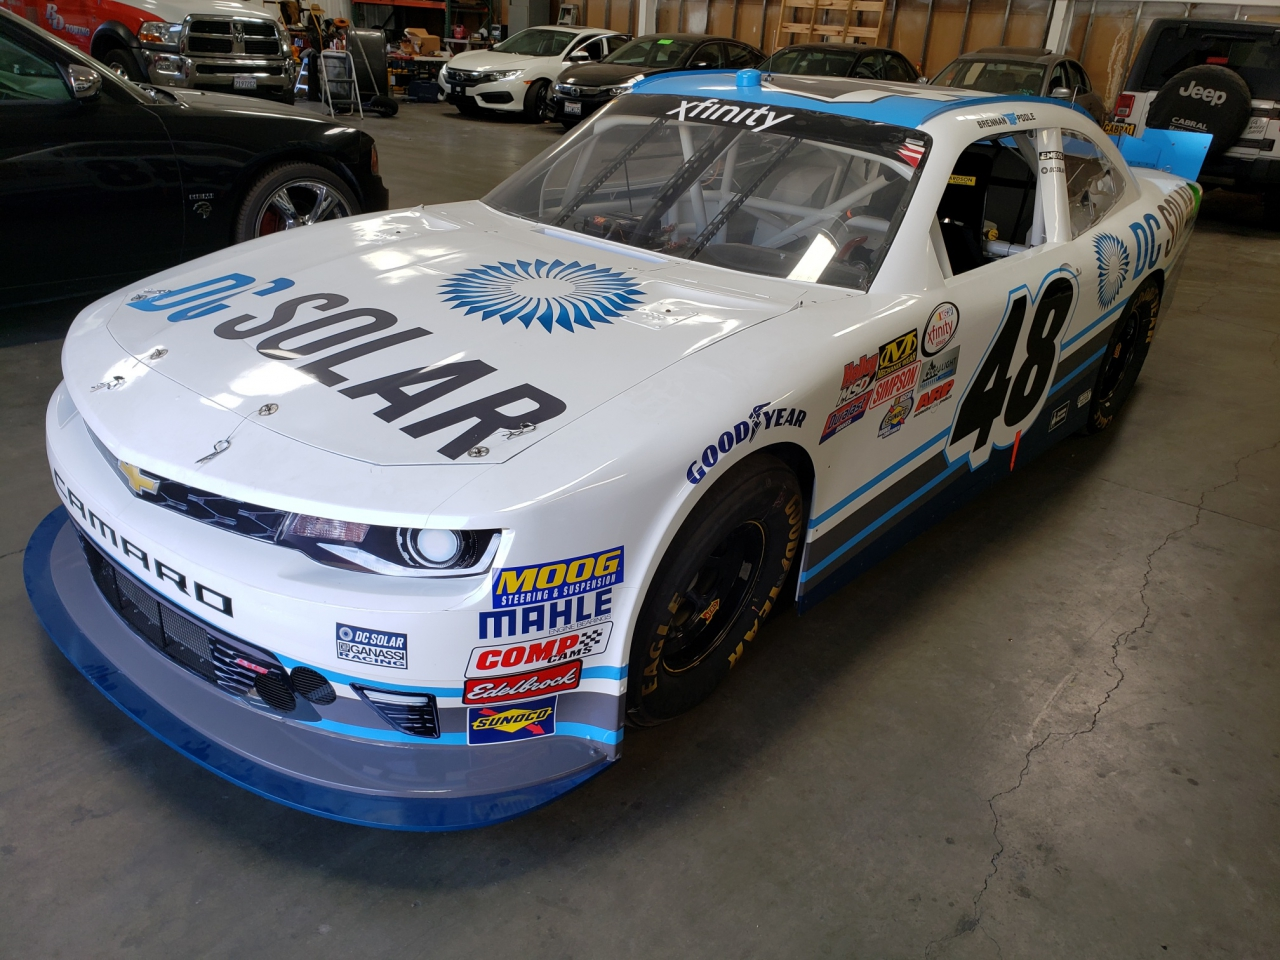 NASCAR Racecar For Sale - Brennan Poole